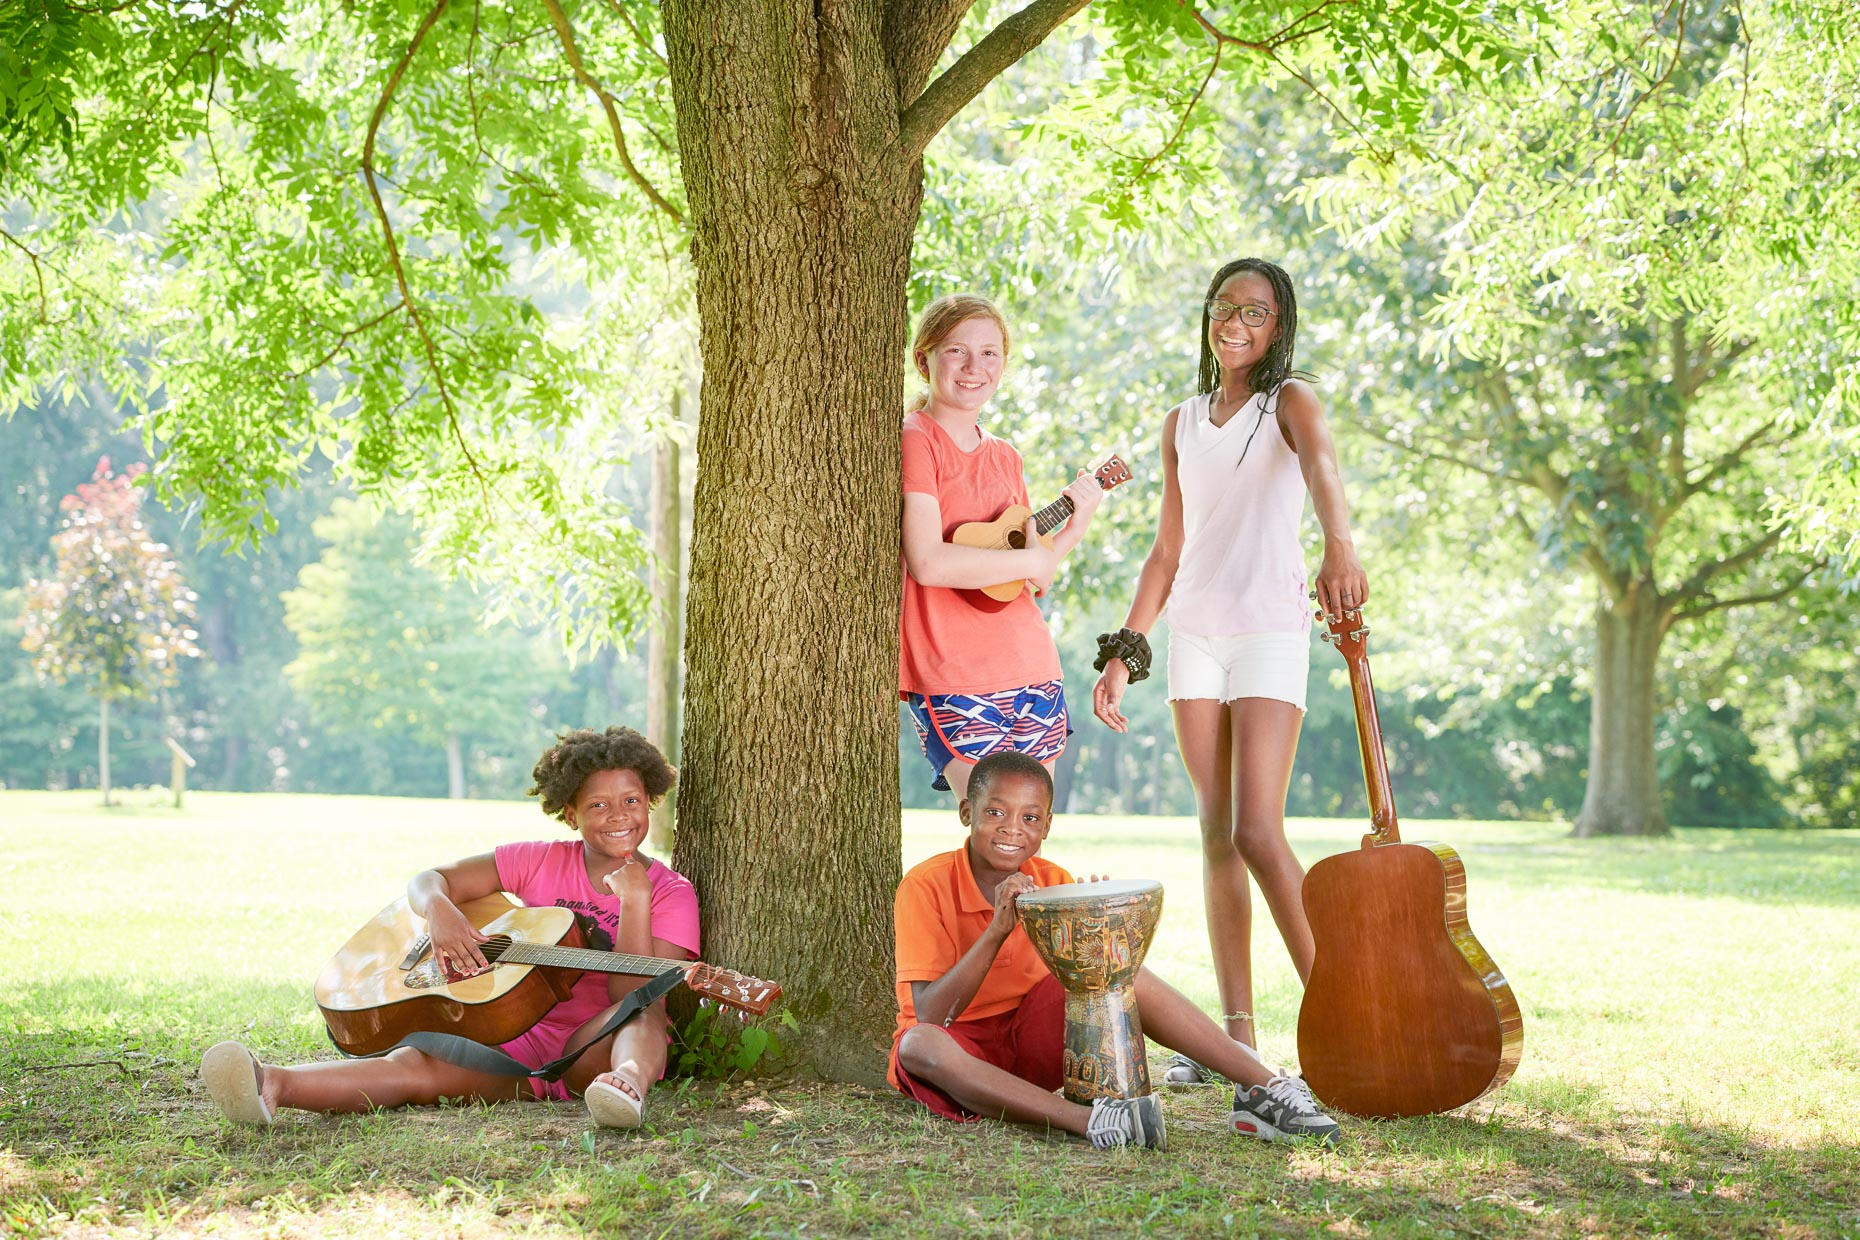 Music Students at Art Camp | Appel Farm Advertising